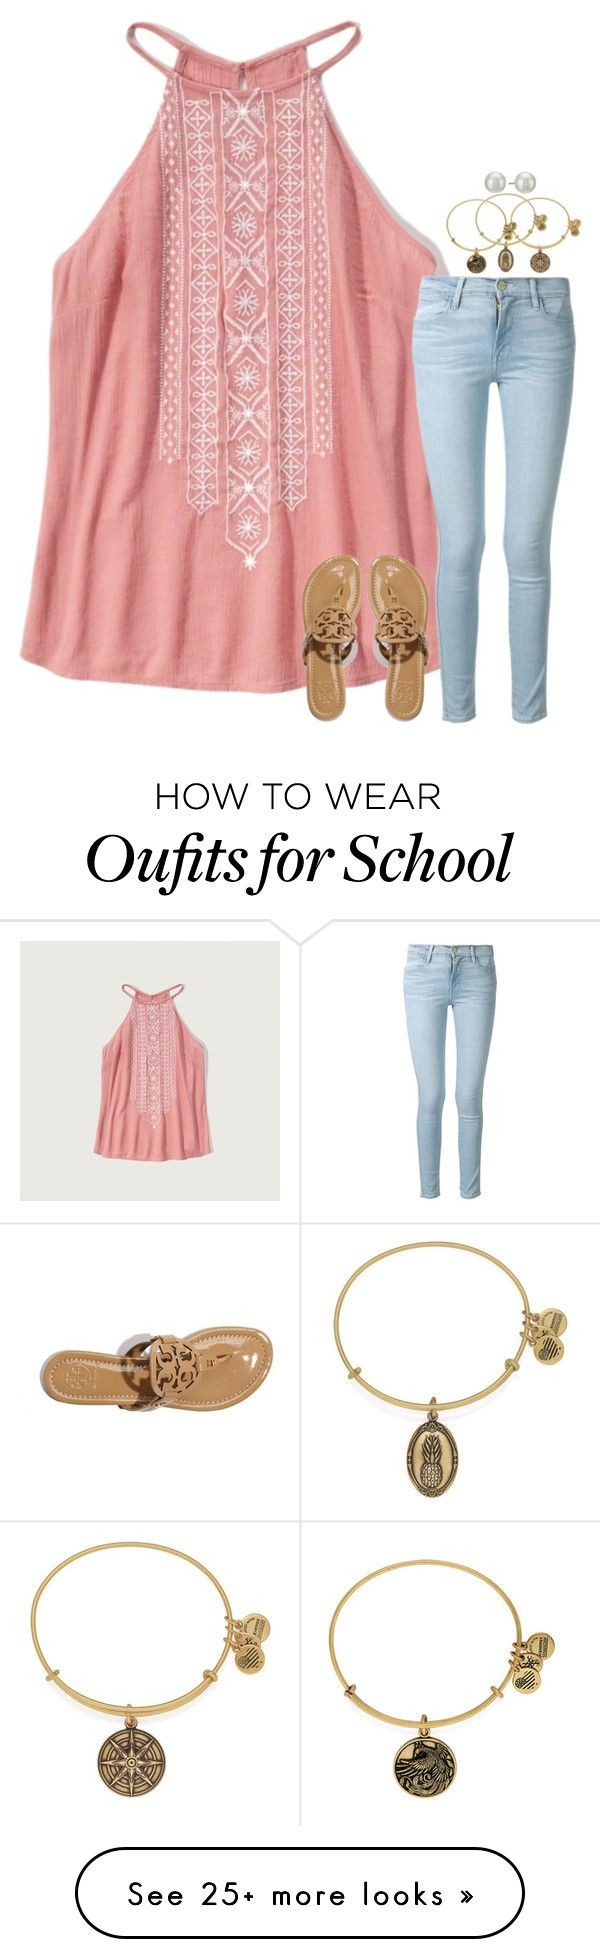 """at school rn"" by jazmintorres1 on Polyvore featuring Abercrombie & Fitch, Frame Denim, Tory Burch, Alex and Ani and Kenneth Jay Lane"